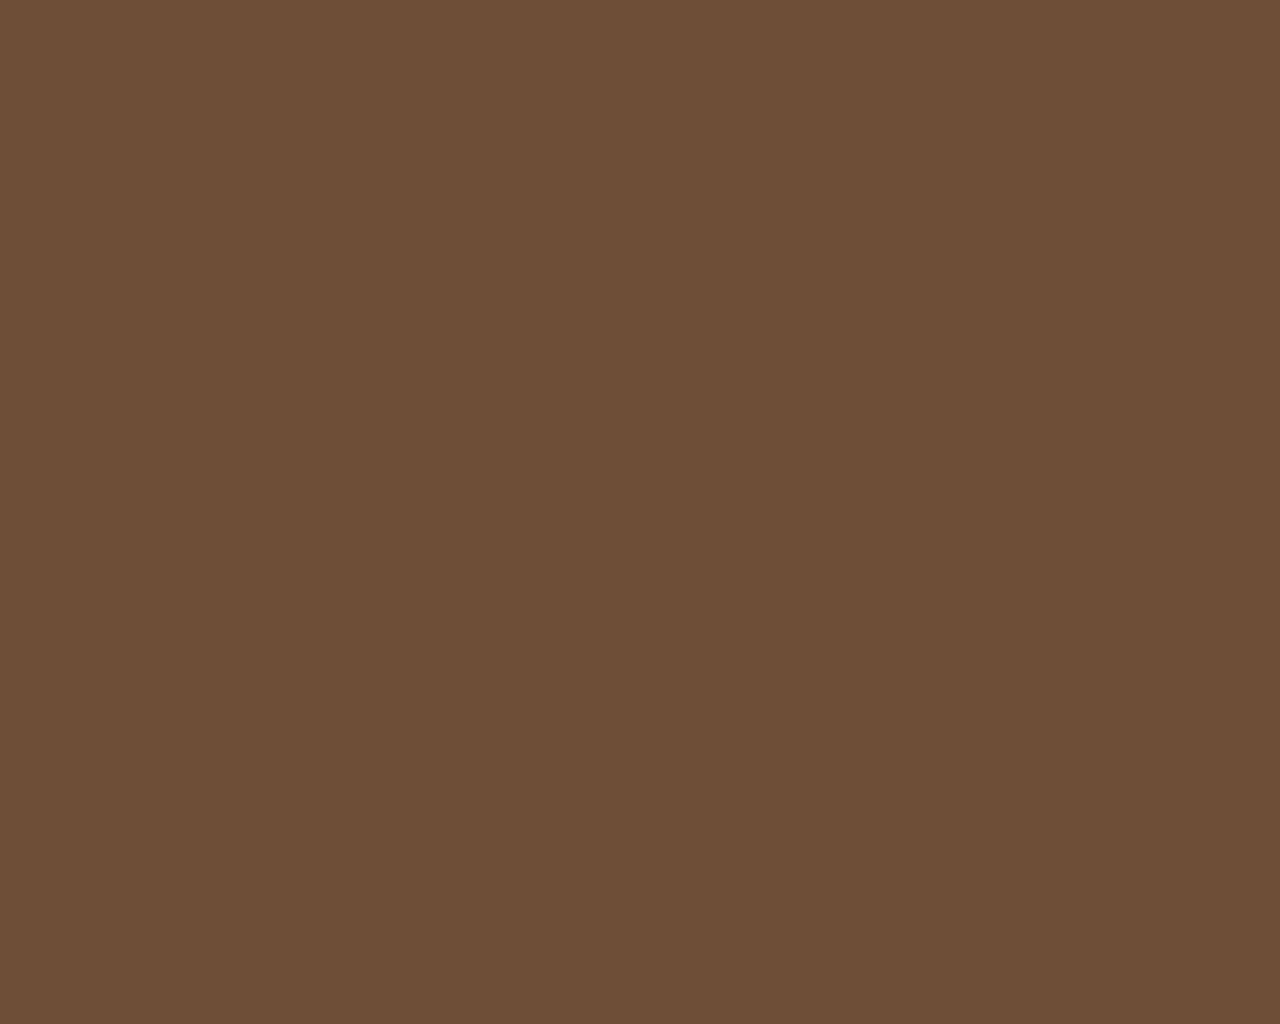 1280x1024 Coffee Solid Color Background